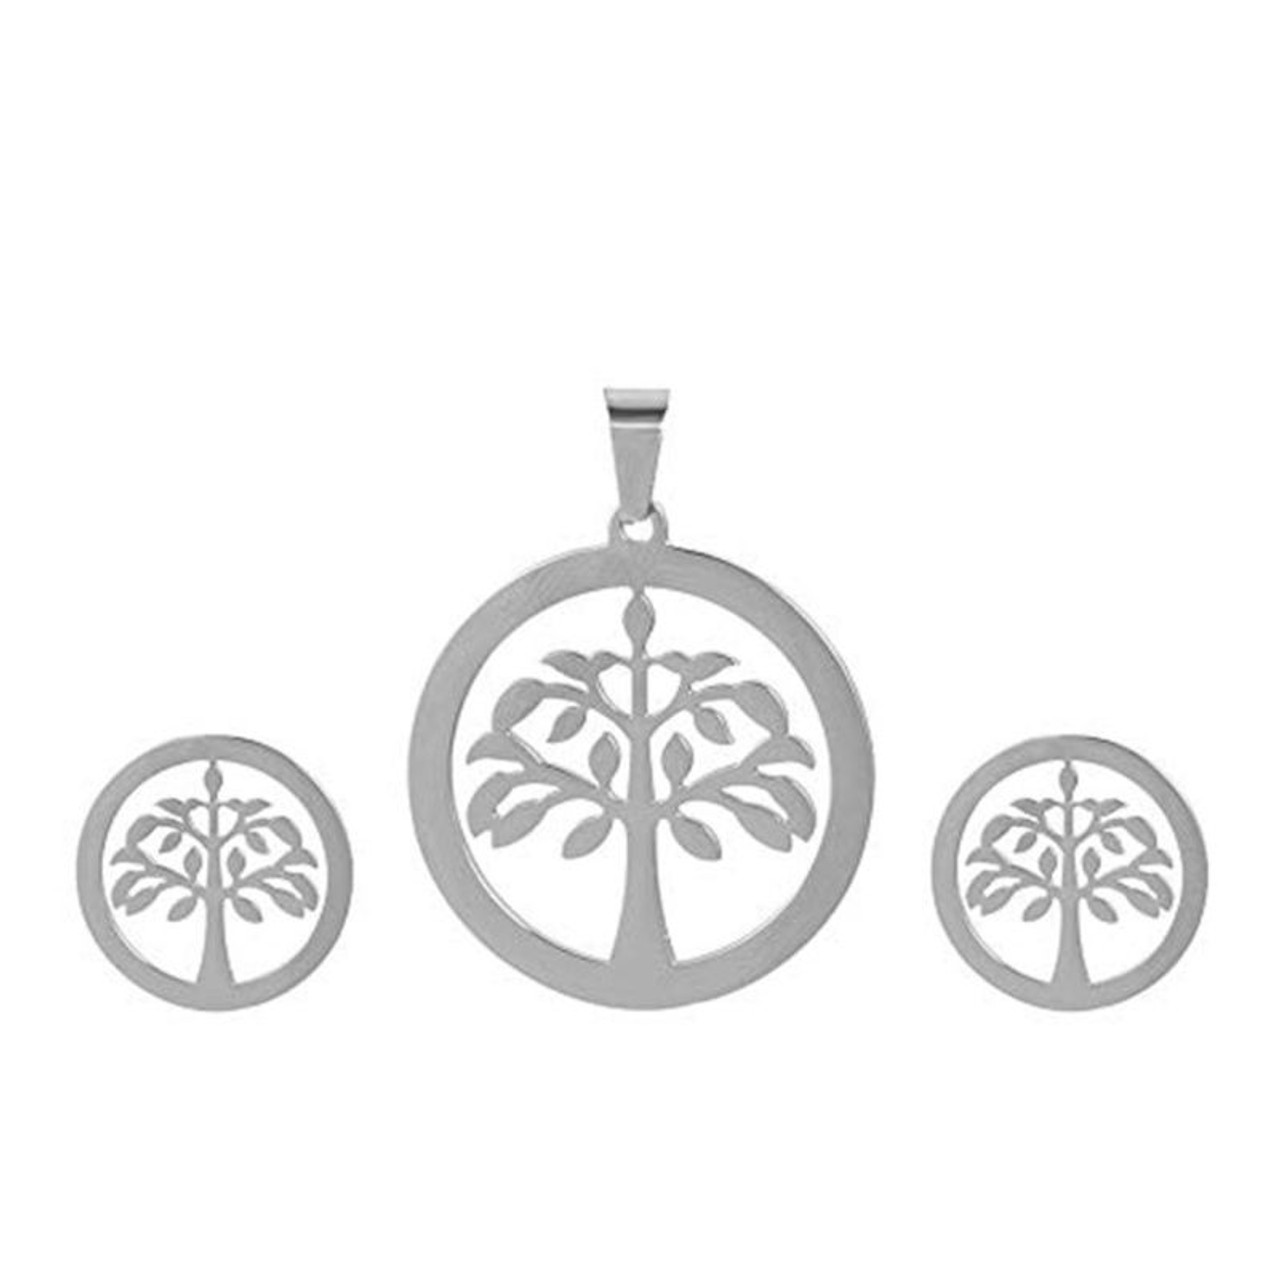 Charles Delon Women's Silver or Gold Tree Pendant and Earrings Set